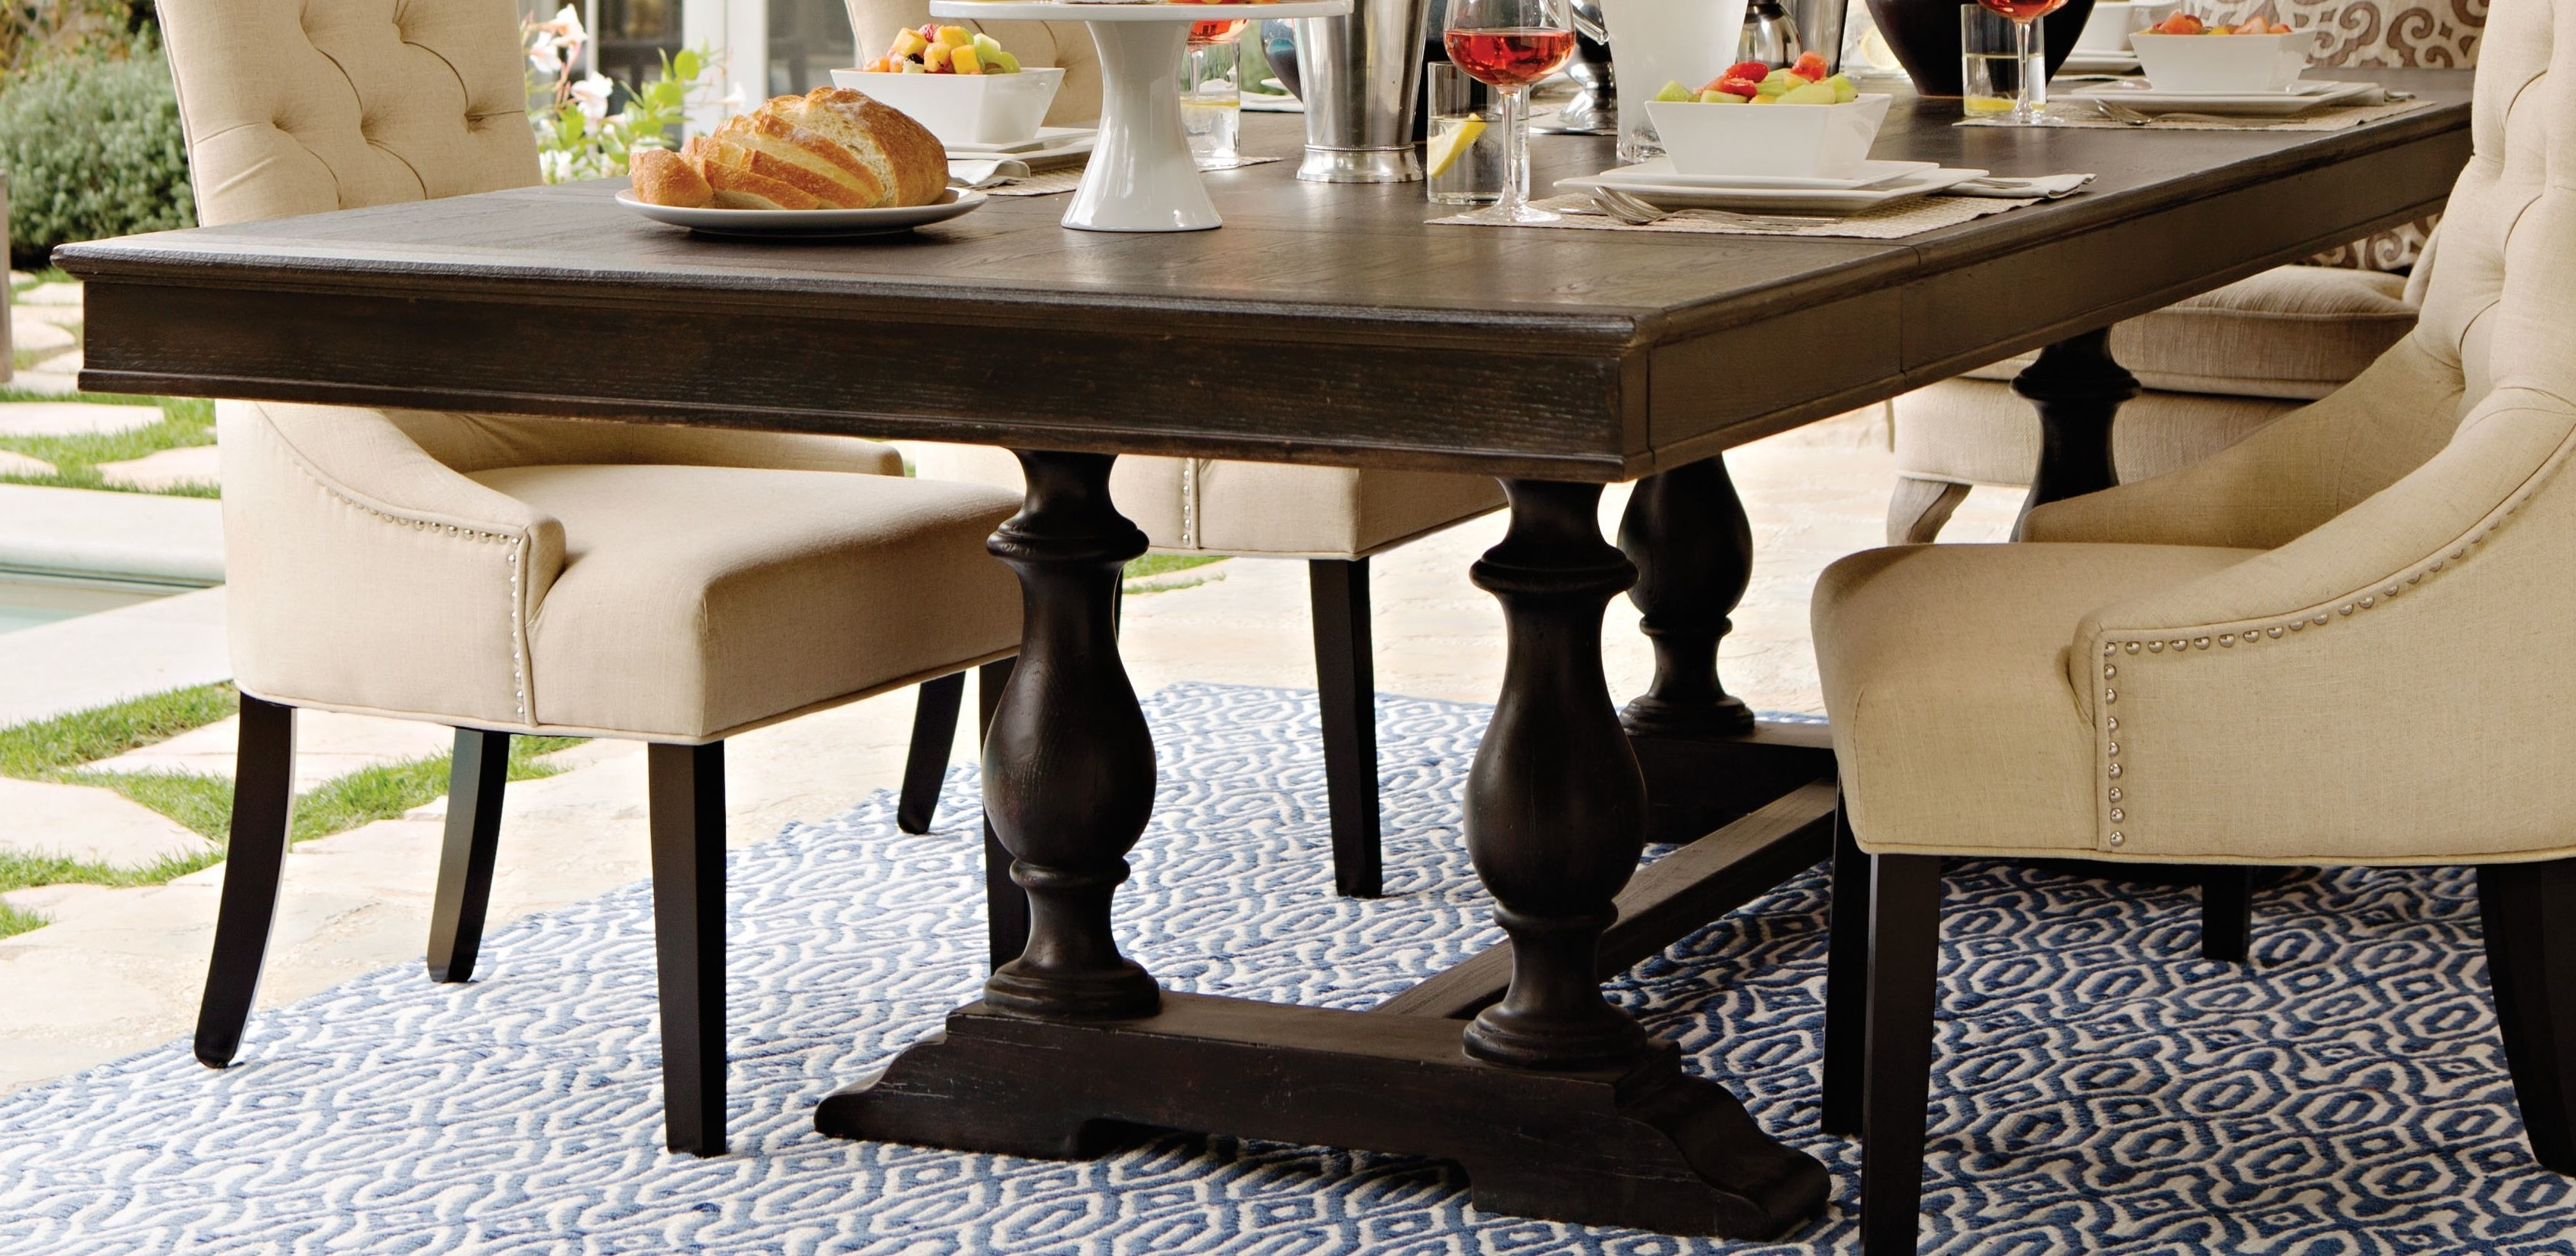 Chapleau Extension Dining Table (View 4 of 20)